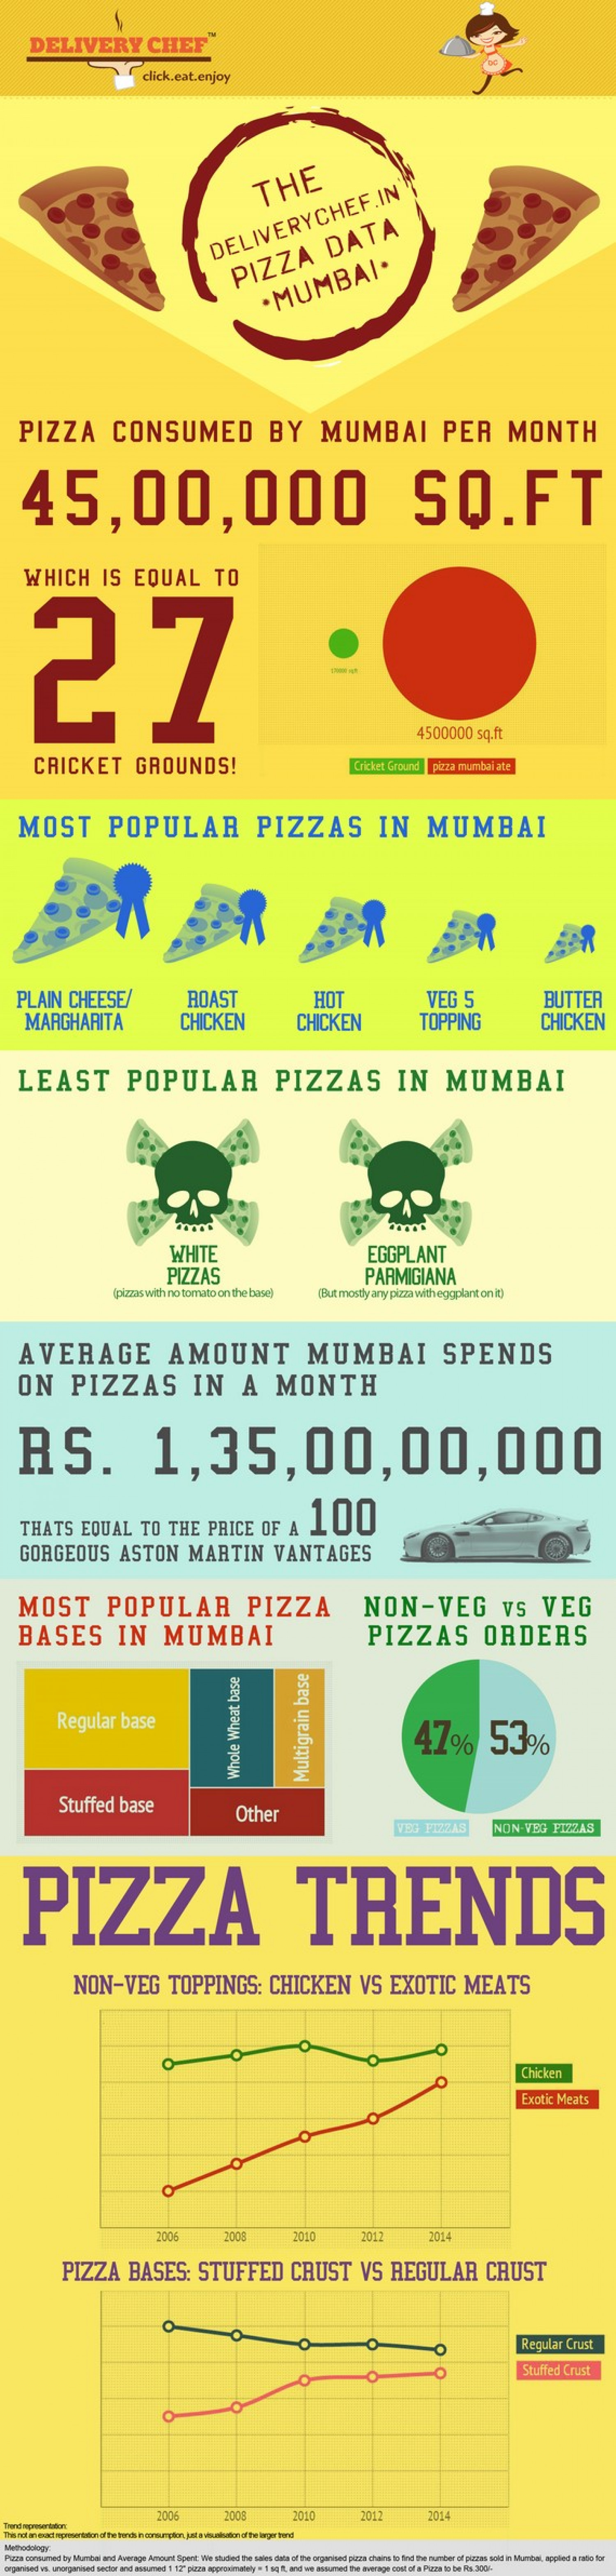 The Deliverychef in Pizza Data Mumbai Infographic